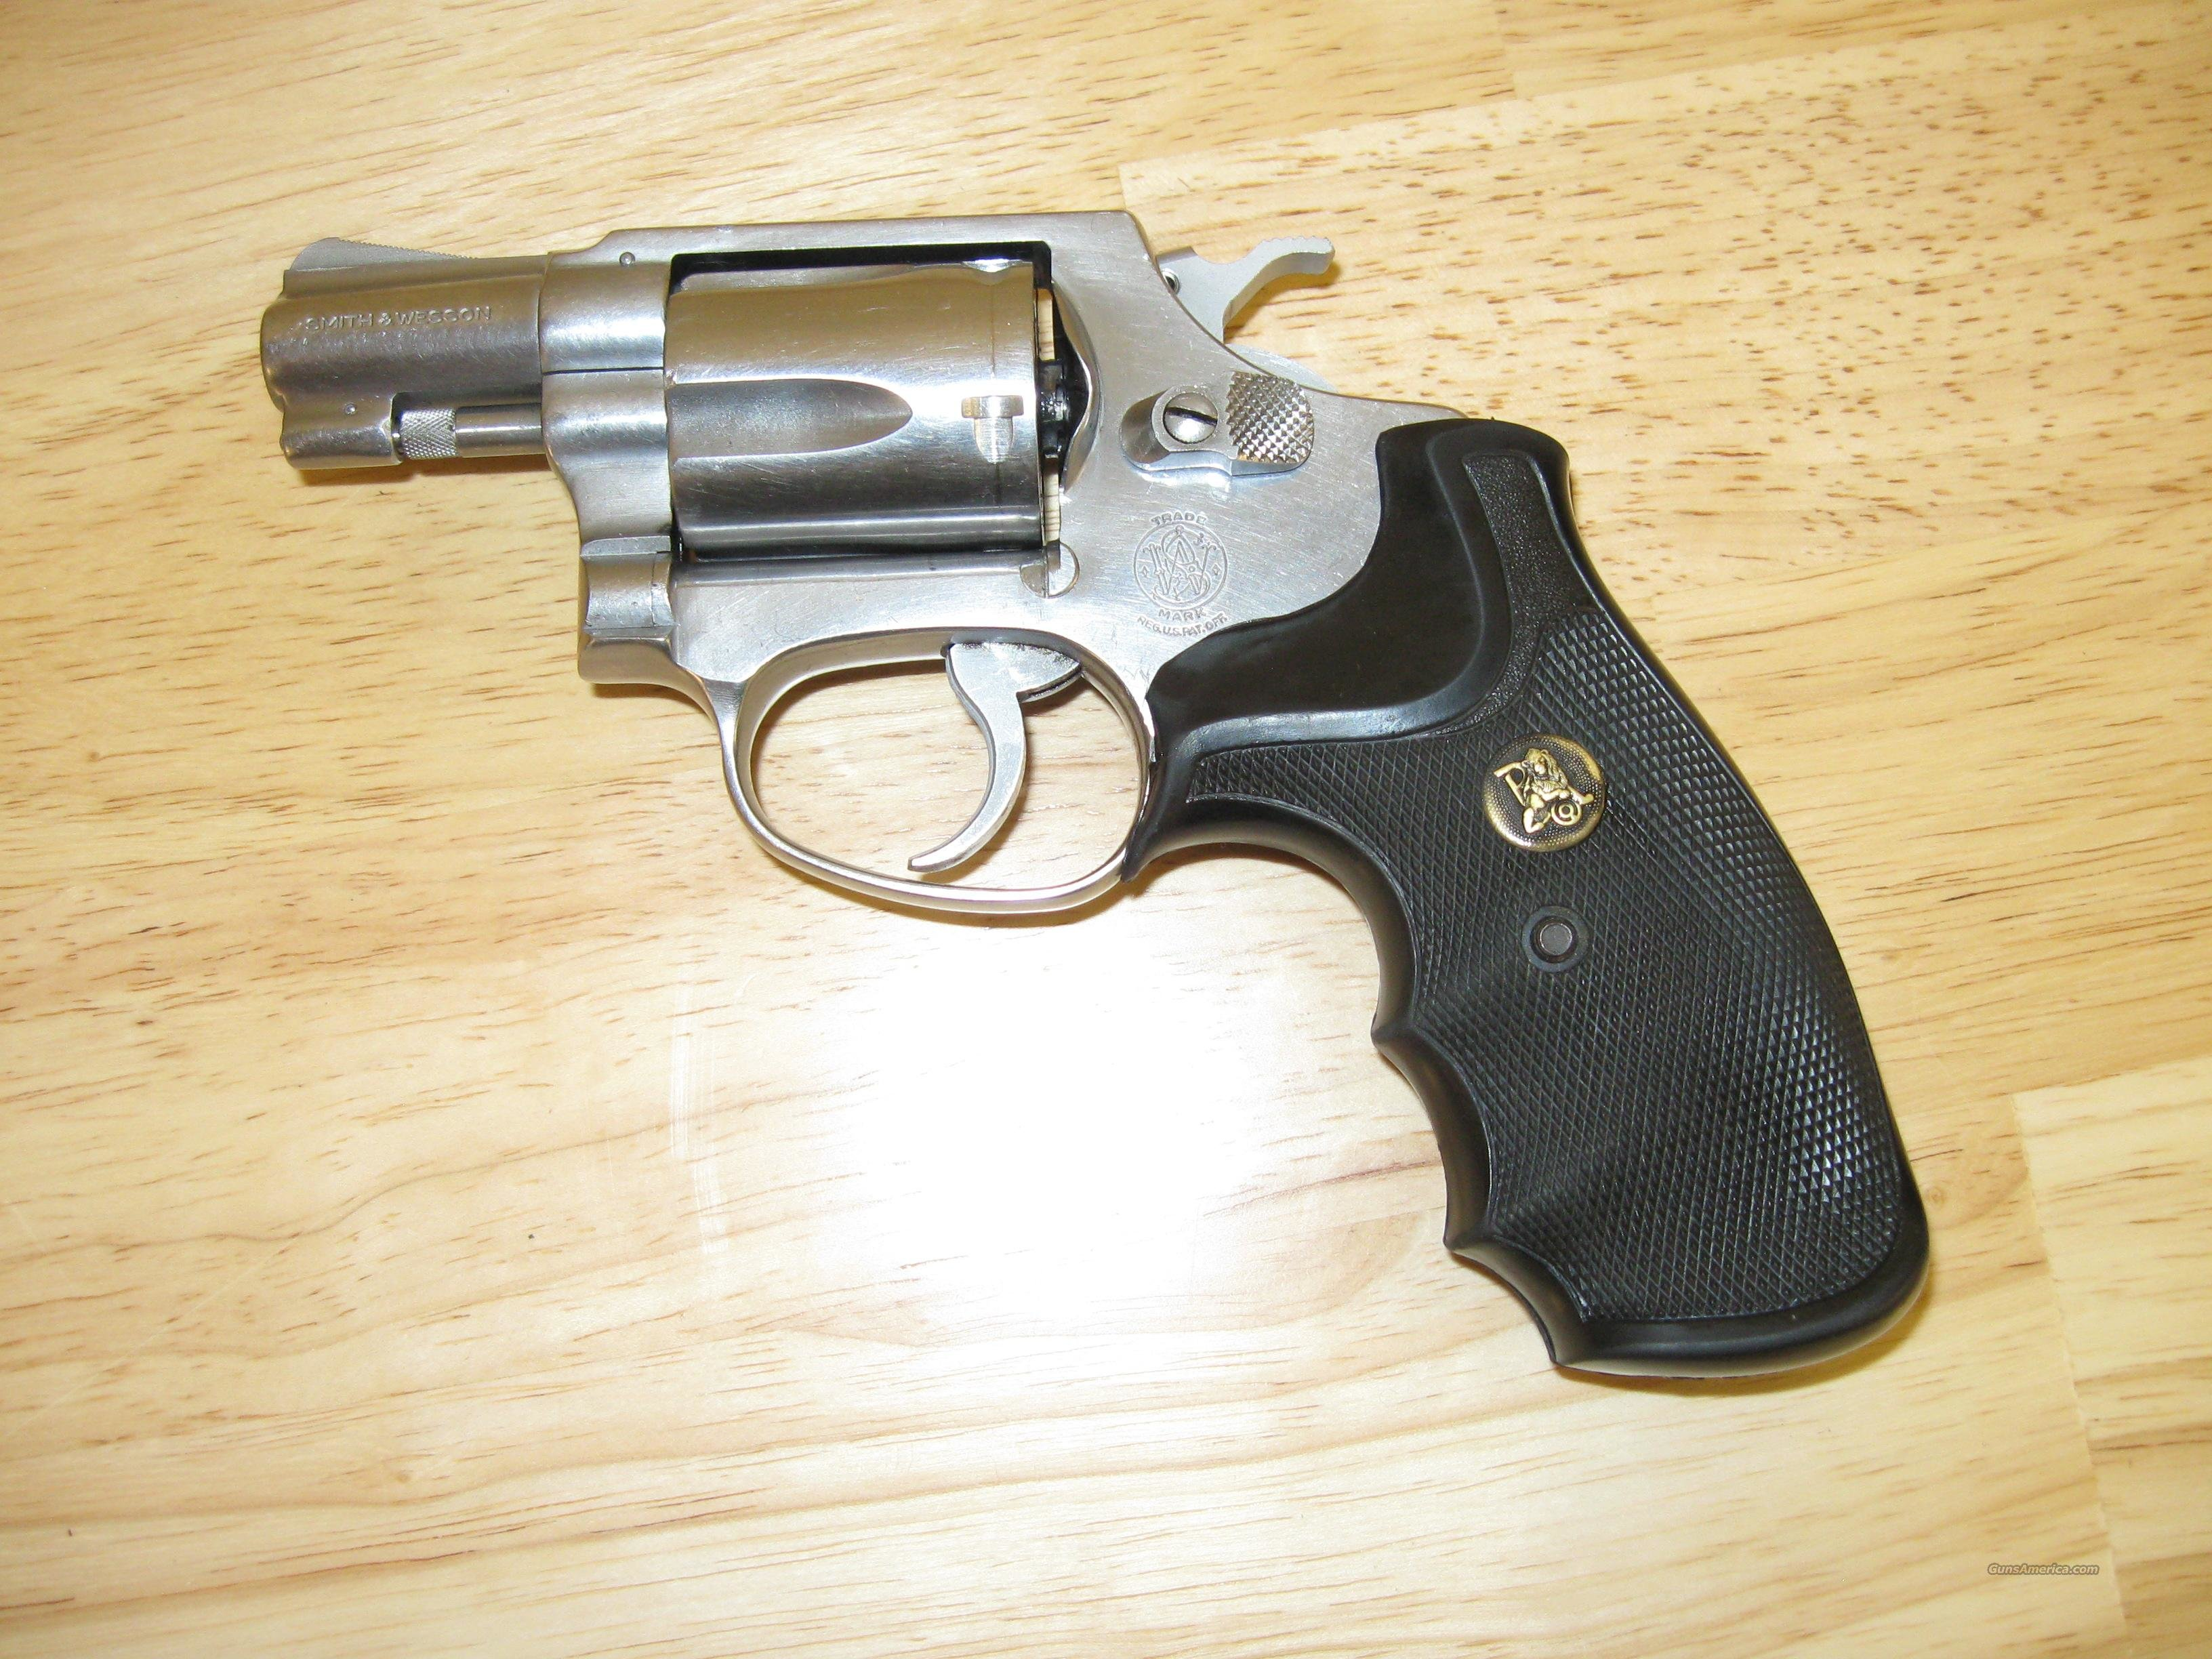 1974-1977 Smith and Wesson Model 60 Chiefs special .38sp  Guns > Pistols > Smith & Wesson Revolvers > Pocket Pistols